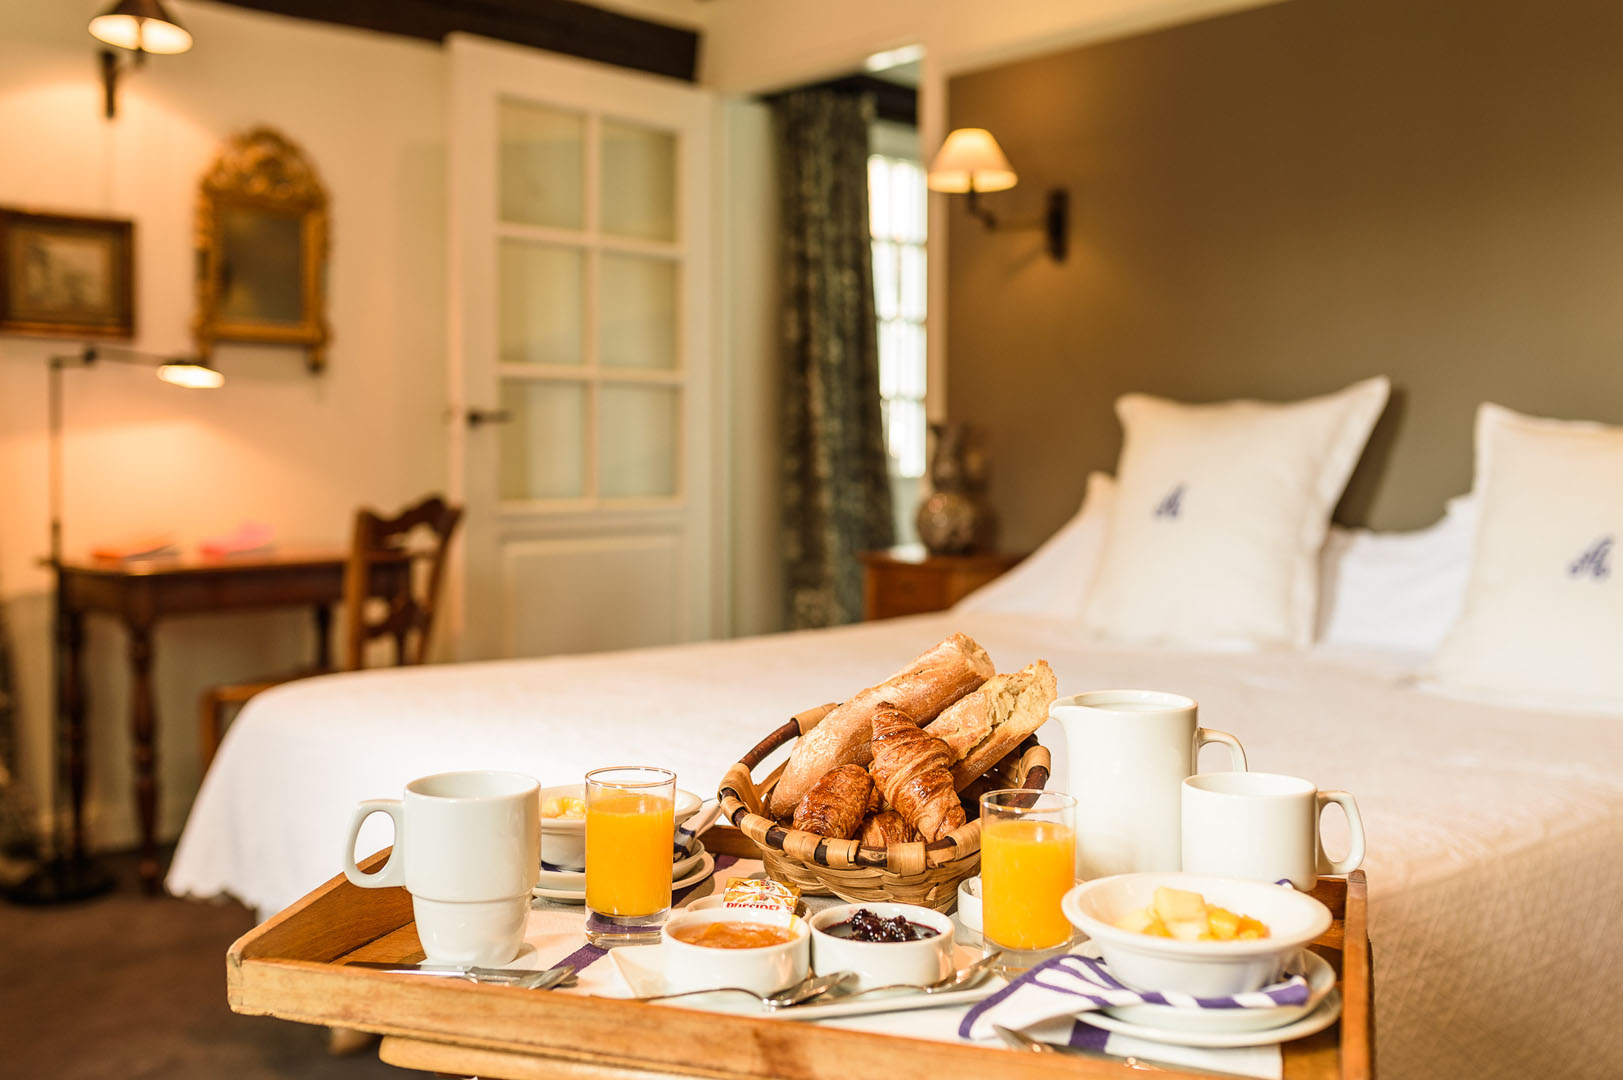 Room with breakfast tray